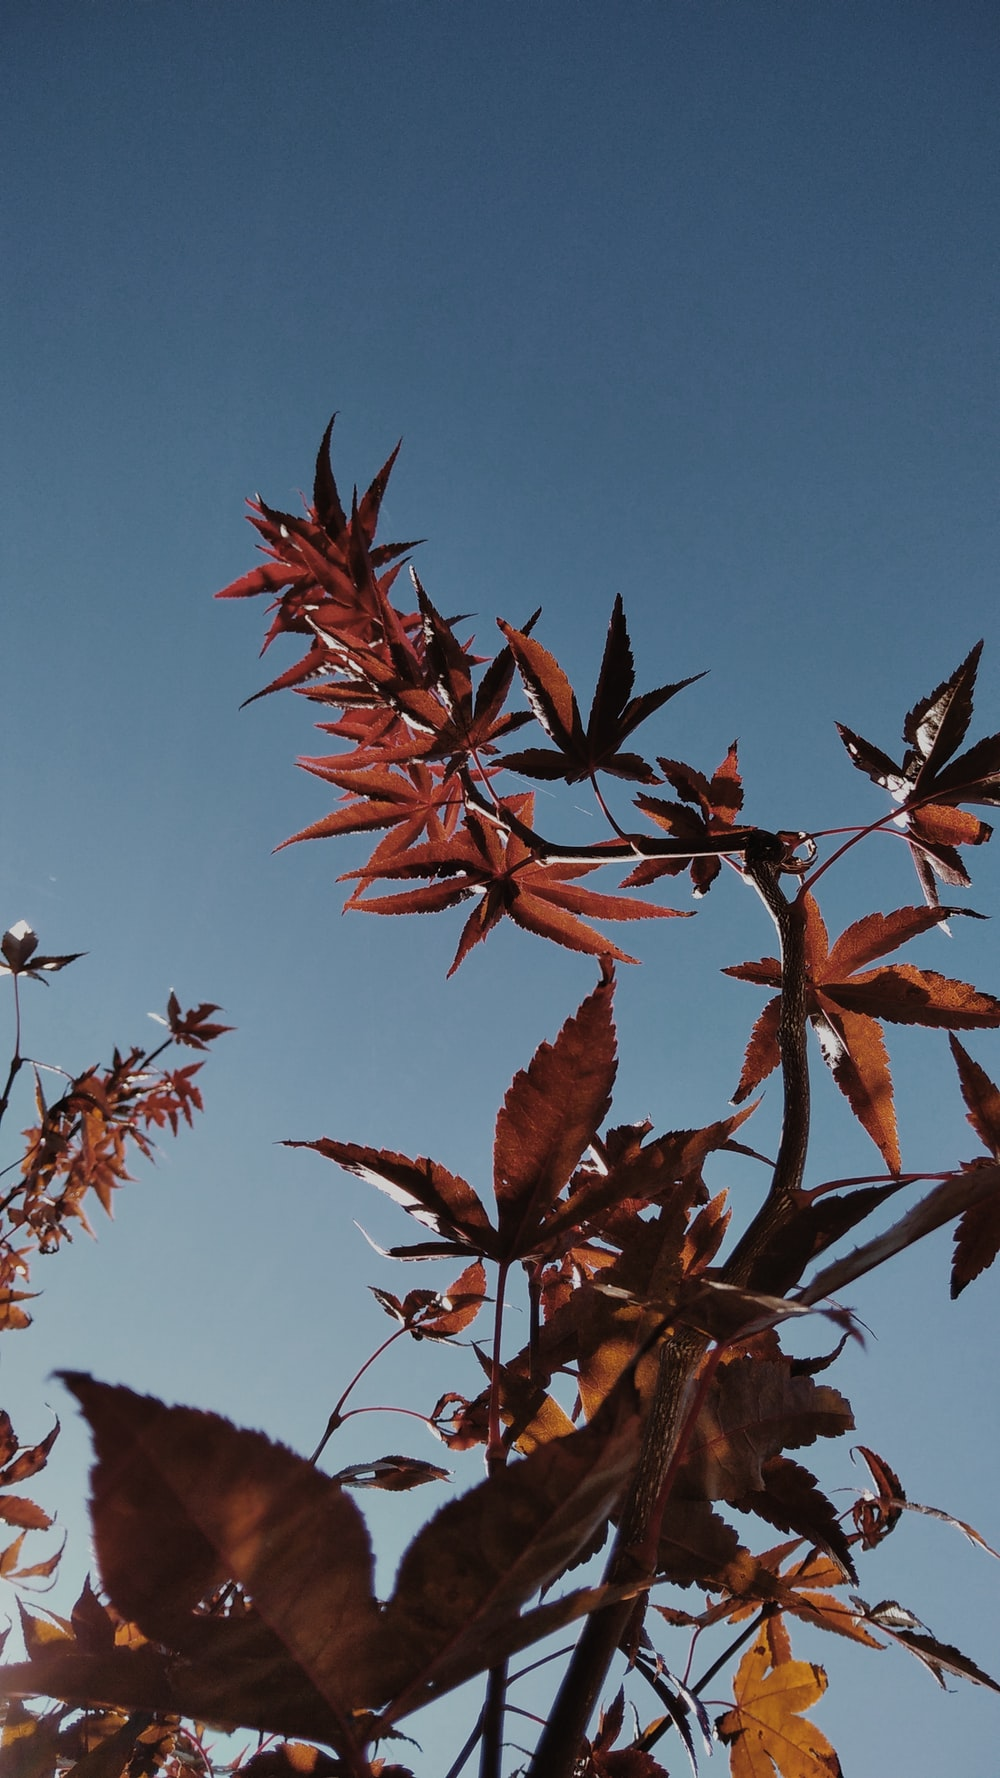 red leaves on tree branch